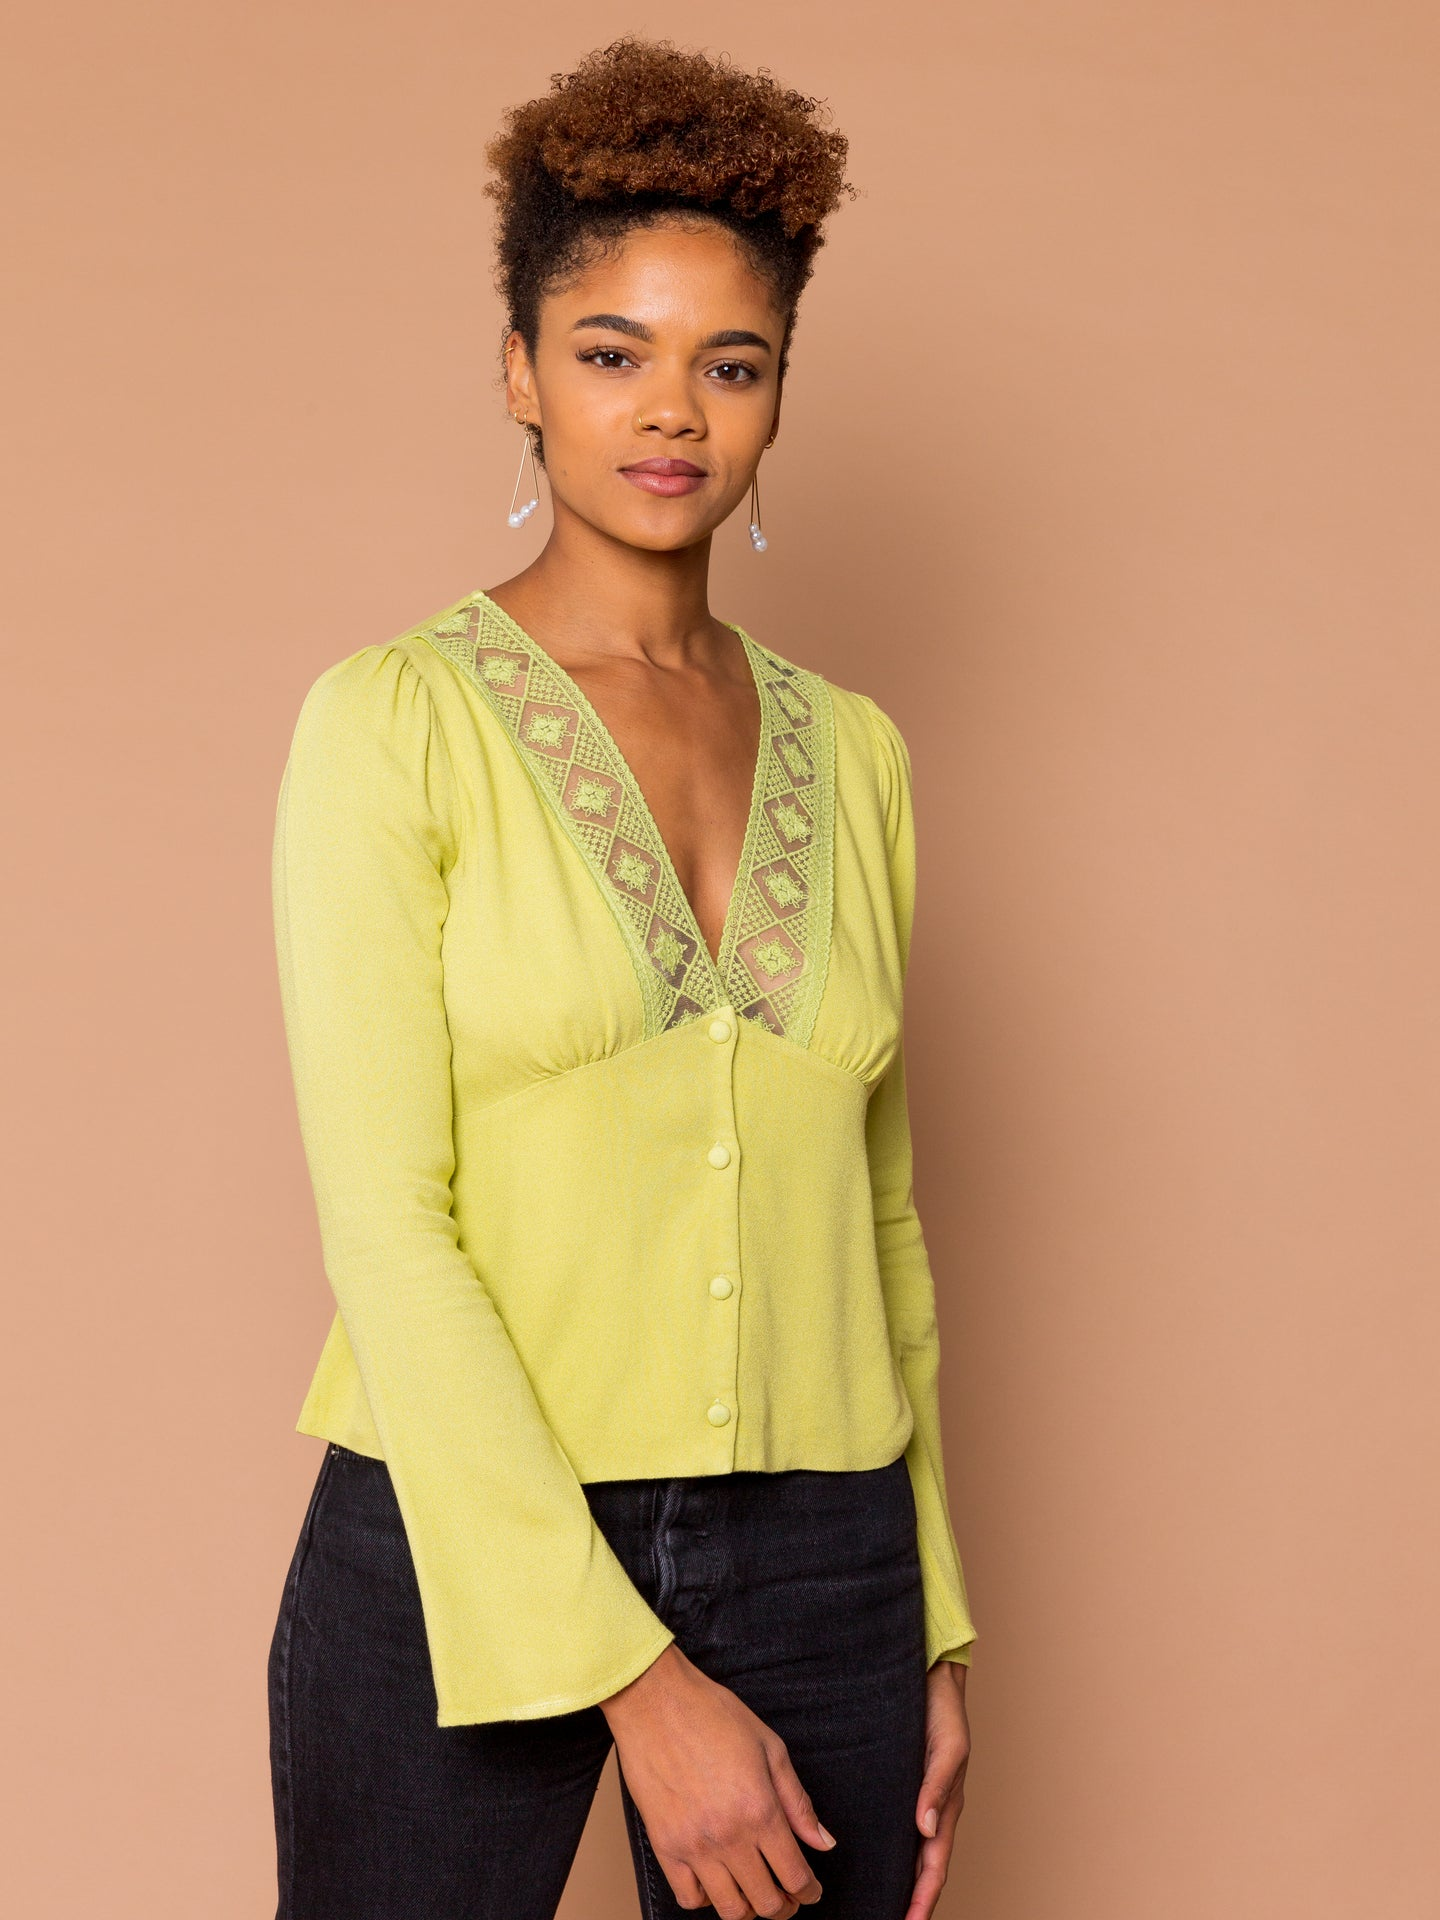 THE LOVERS LACE TOP - Pear